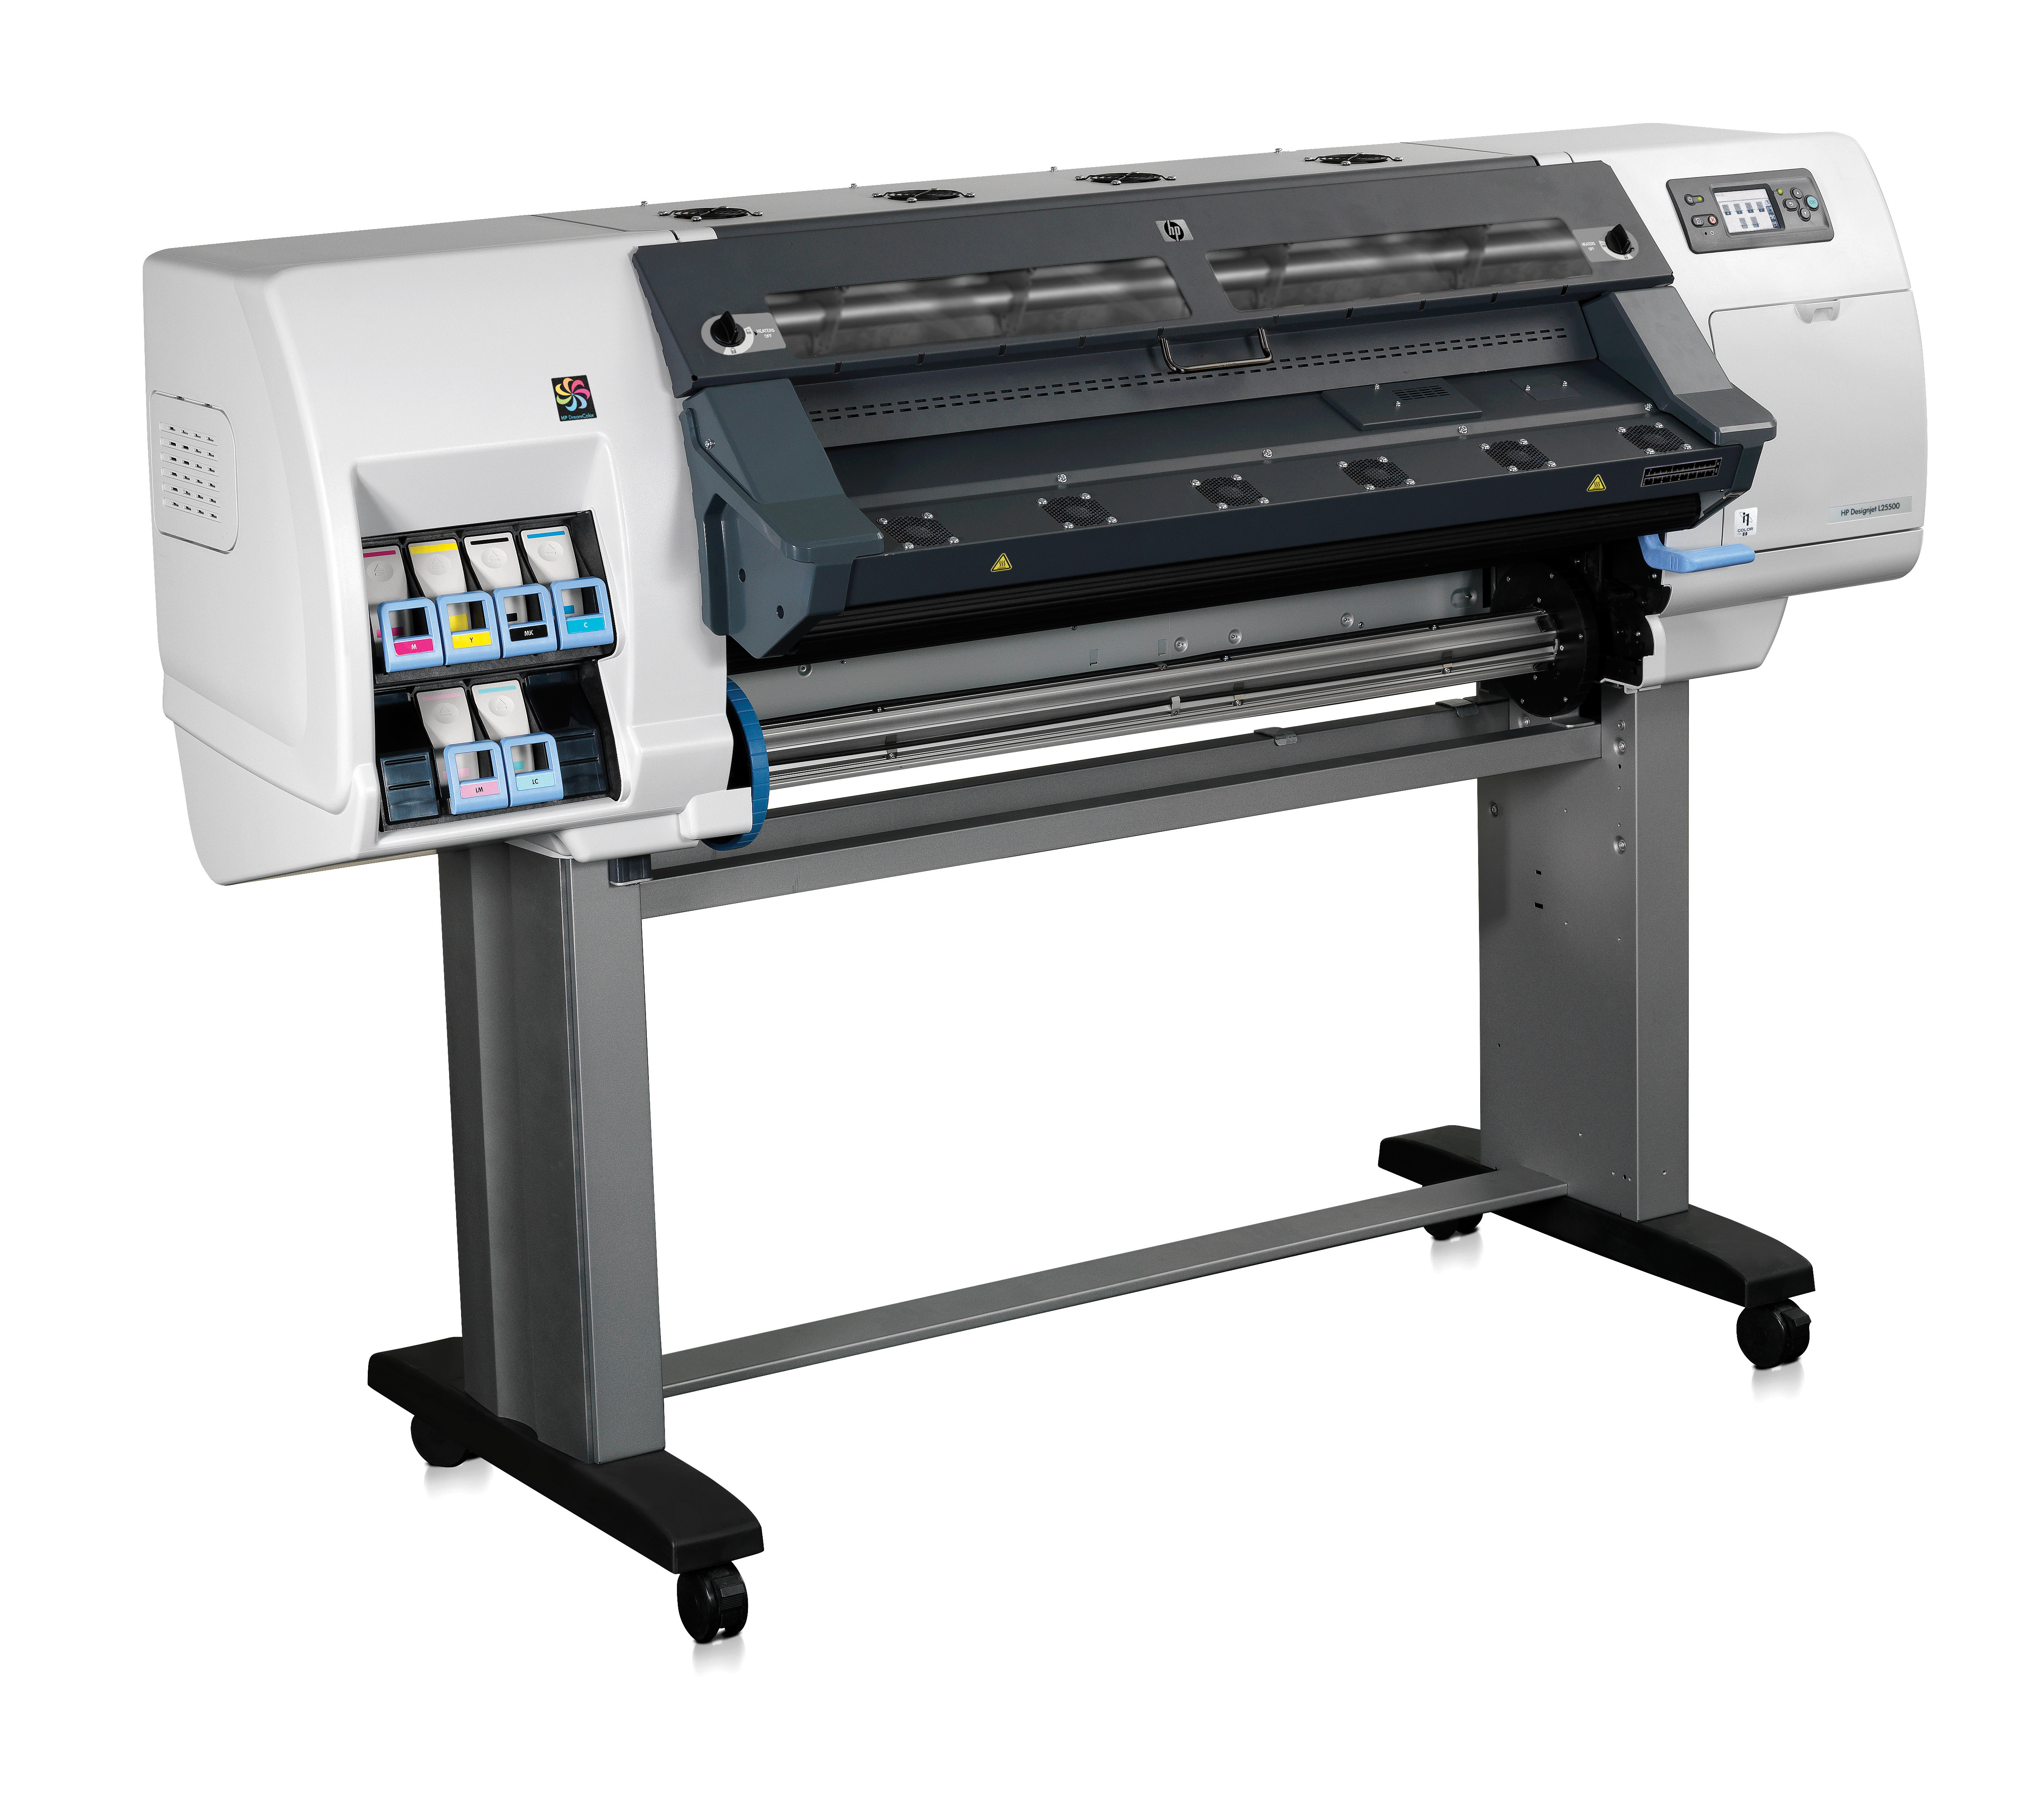 check out the site preparation guide for the hp designjet l25500 rh blog lexjet com HP Printing Supplies HP Products and Services